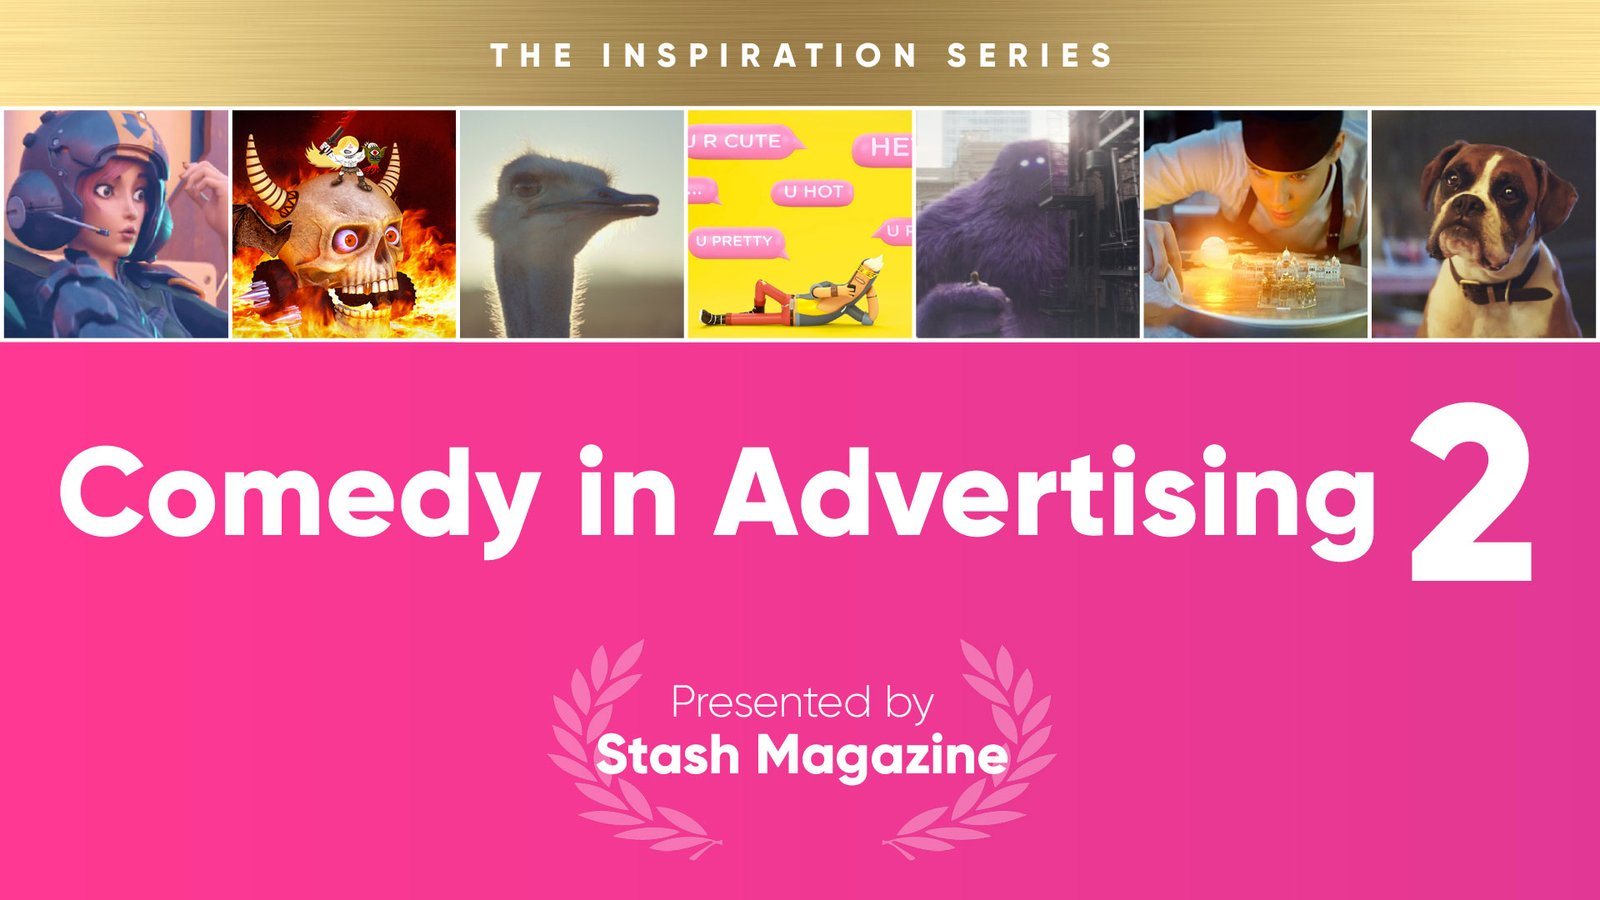 The Inspiration Series: Comedy in Advertising - Volume 2